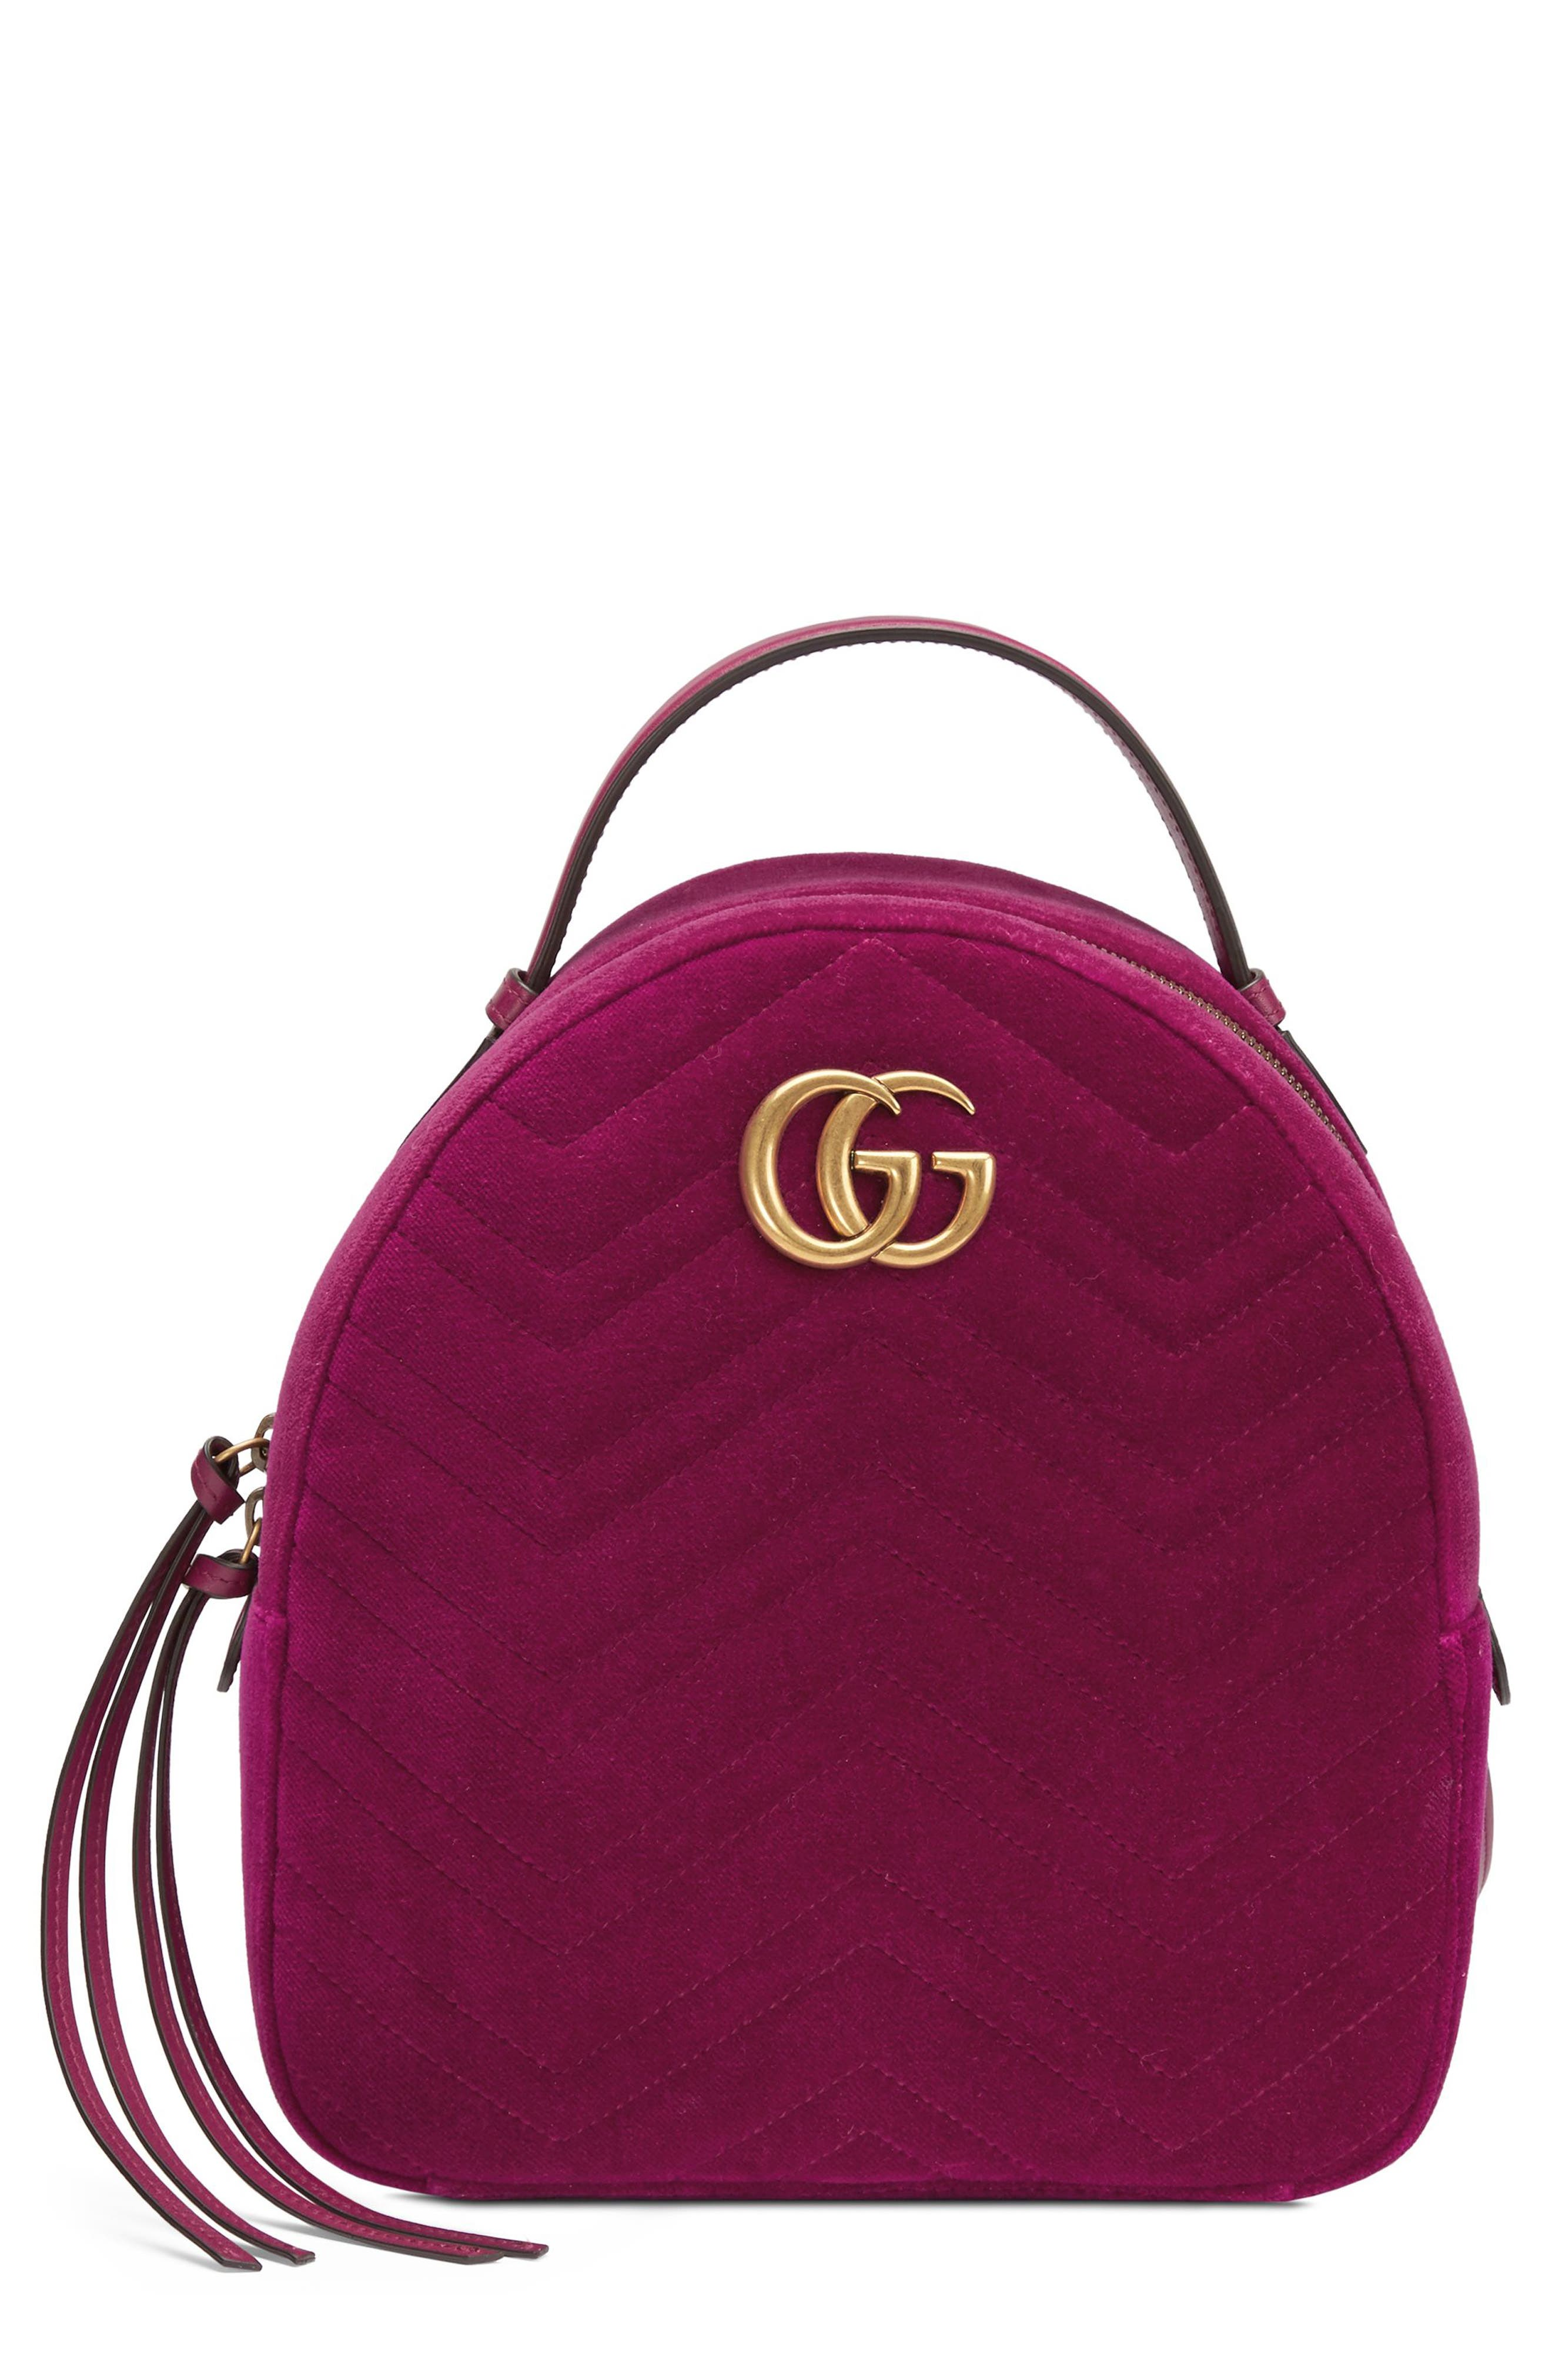 Gg Marmont 2.0 Matelasse Quilted Velvet Backpack - Pink in Fucsia/ Fucsia/ Viola